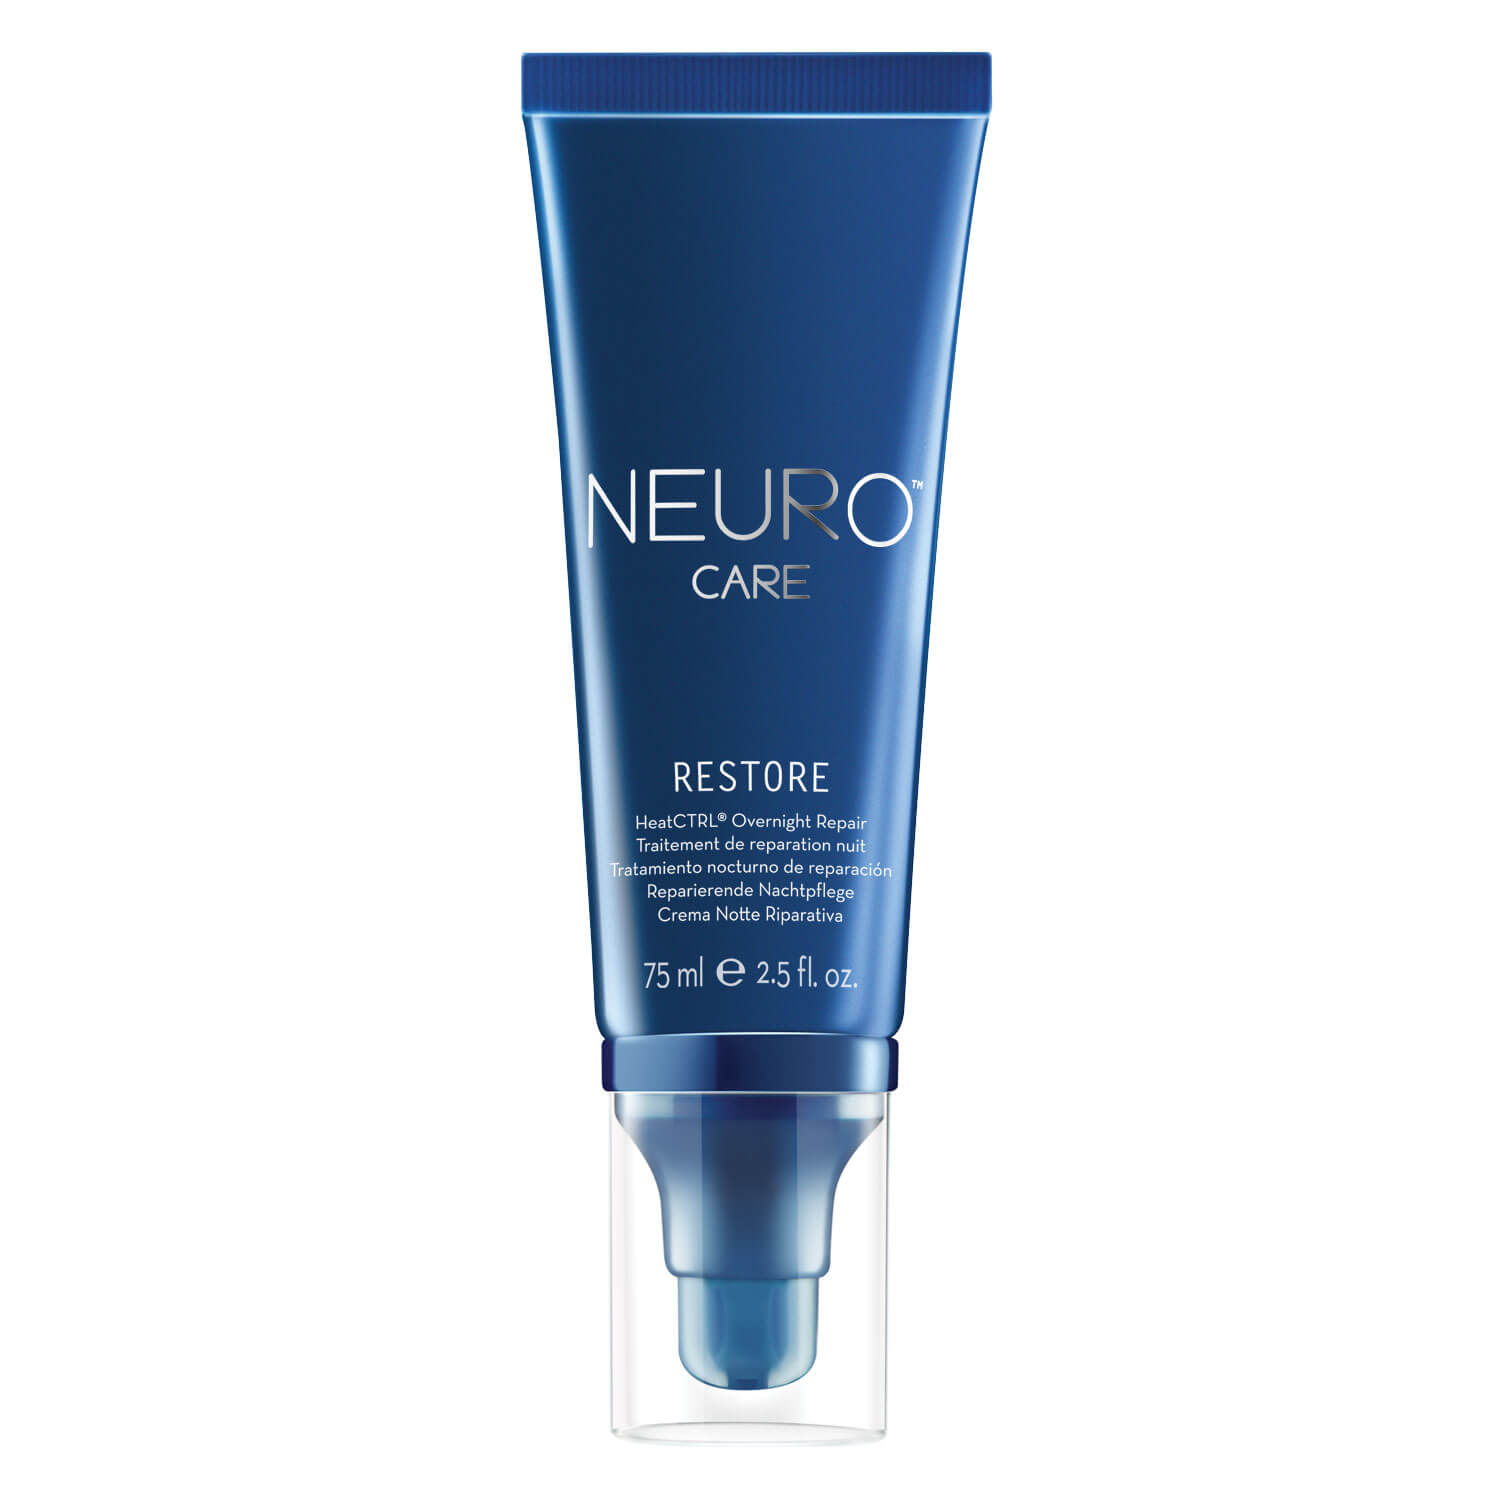 NEURO - Restore HeatCTRL Overnight Repair